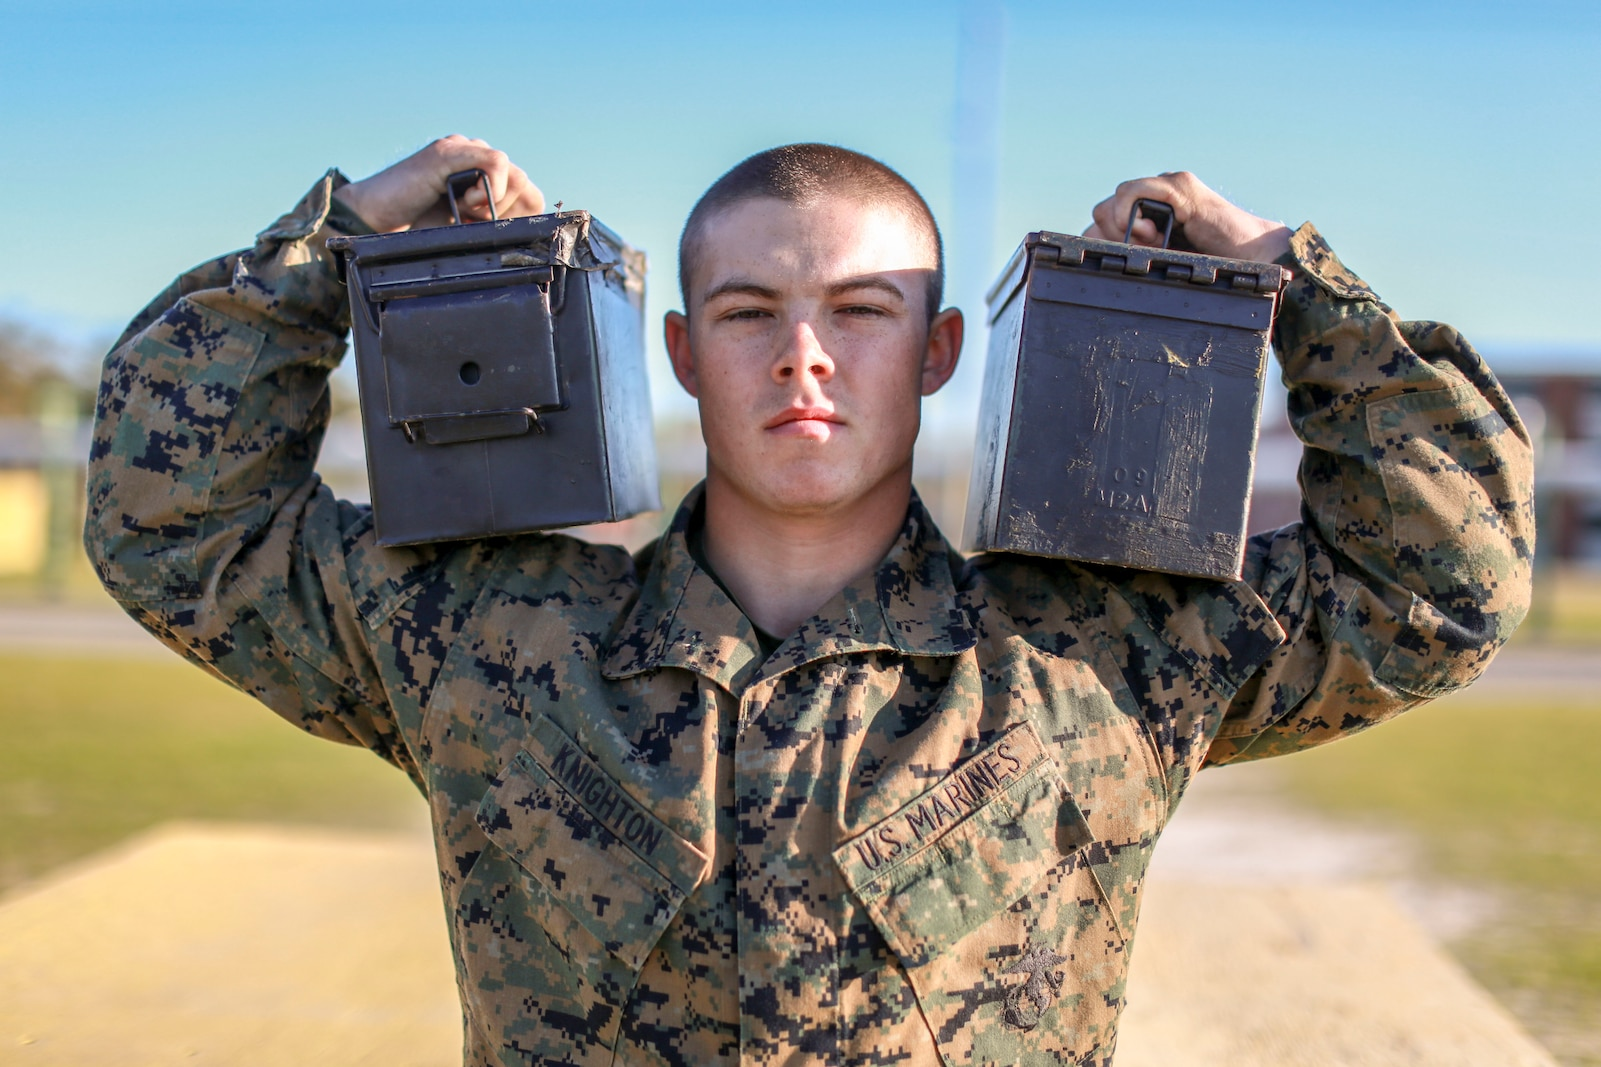 Recruit Dillon Knighton, with Fox Company, 2nd Recruit Training Battalion, poses for a photo after completing a Combat Fitness Test at Marine Corps Recruit Depot Parris Island, South Carolina March 20, 2019. Knighton is a native of Columbus, North Carolina.